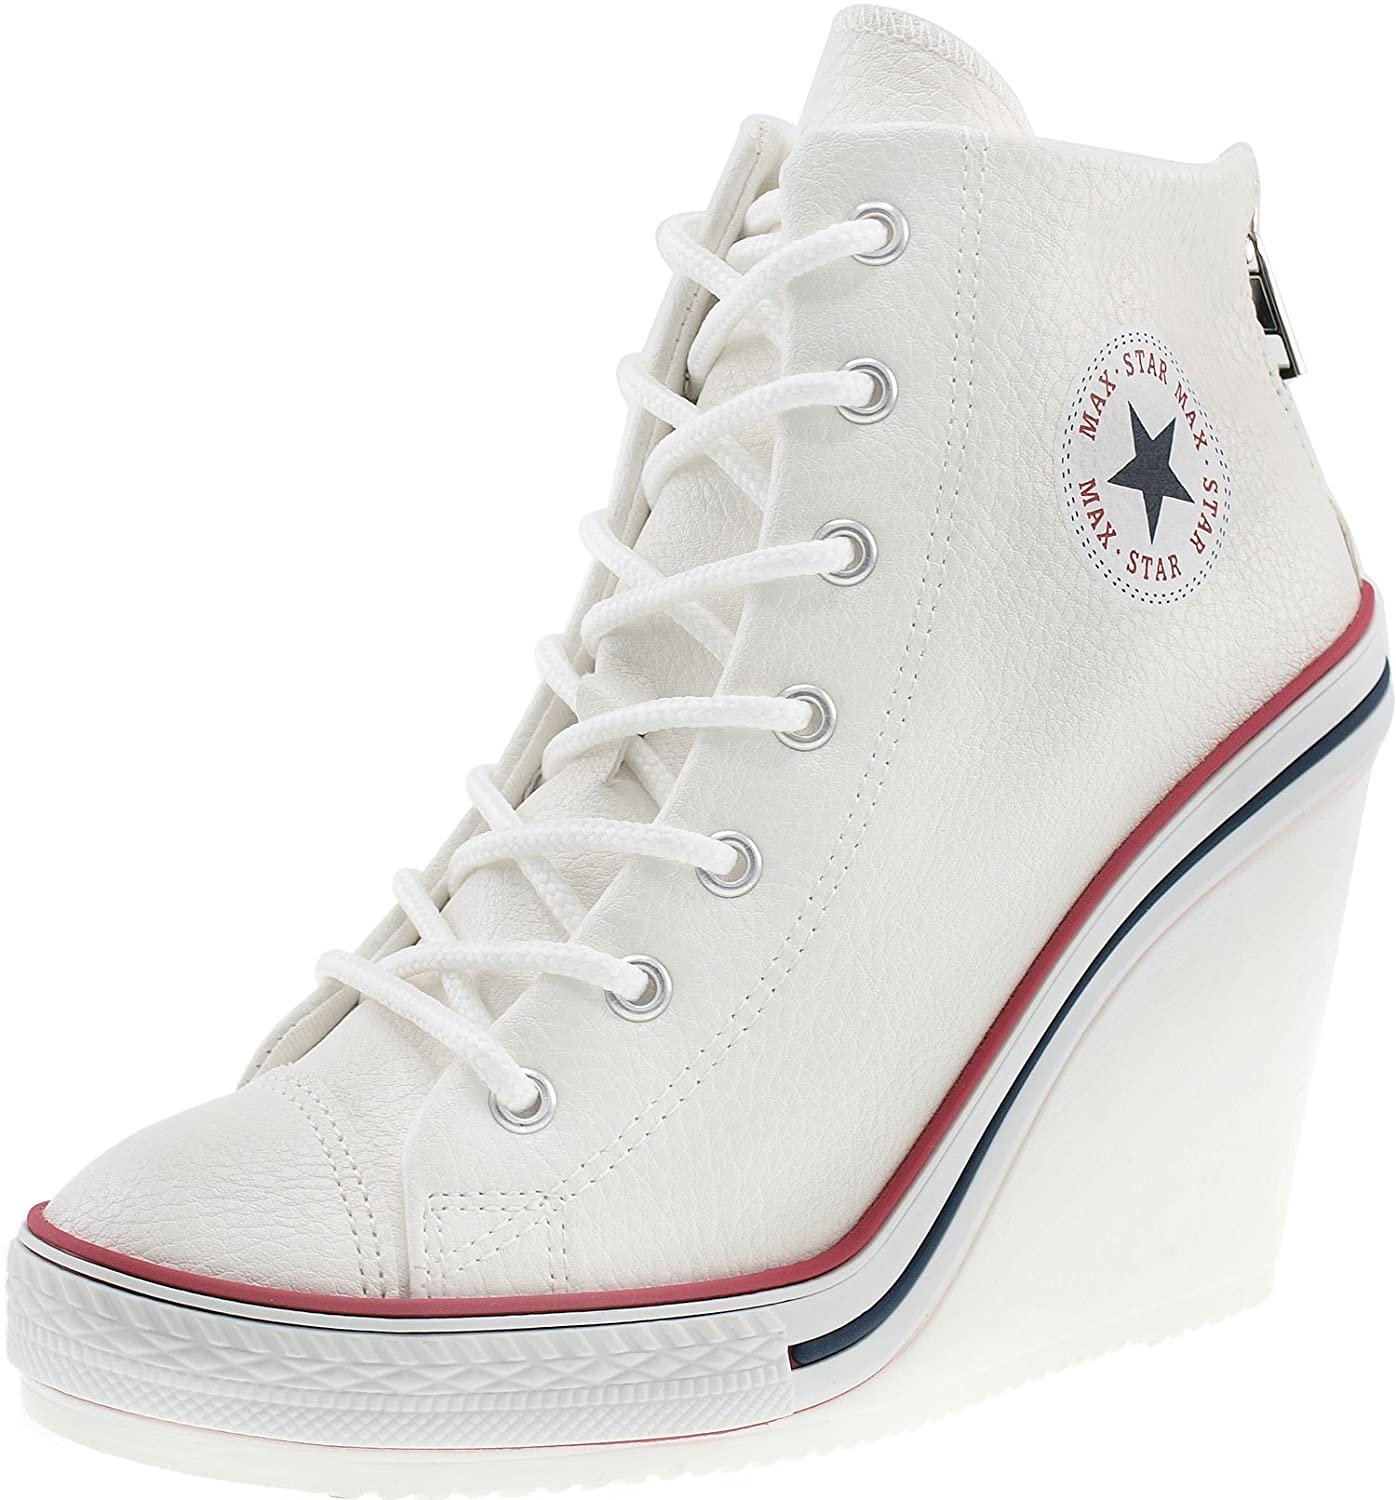 Maxstar Women's 777 Back Zipper PU High Wedge Heel Sneakers B00XTIKKTG 8 B(M) US|White